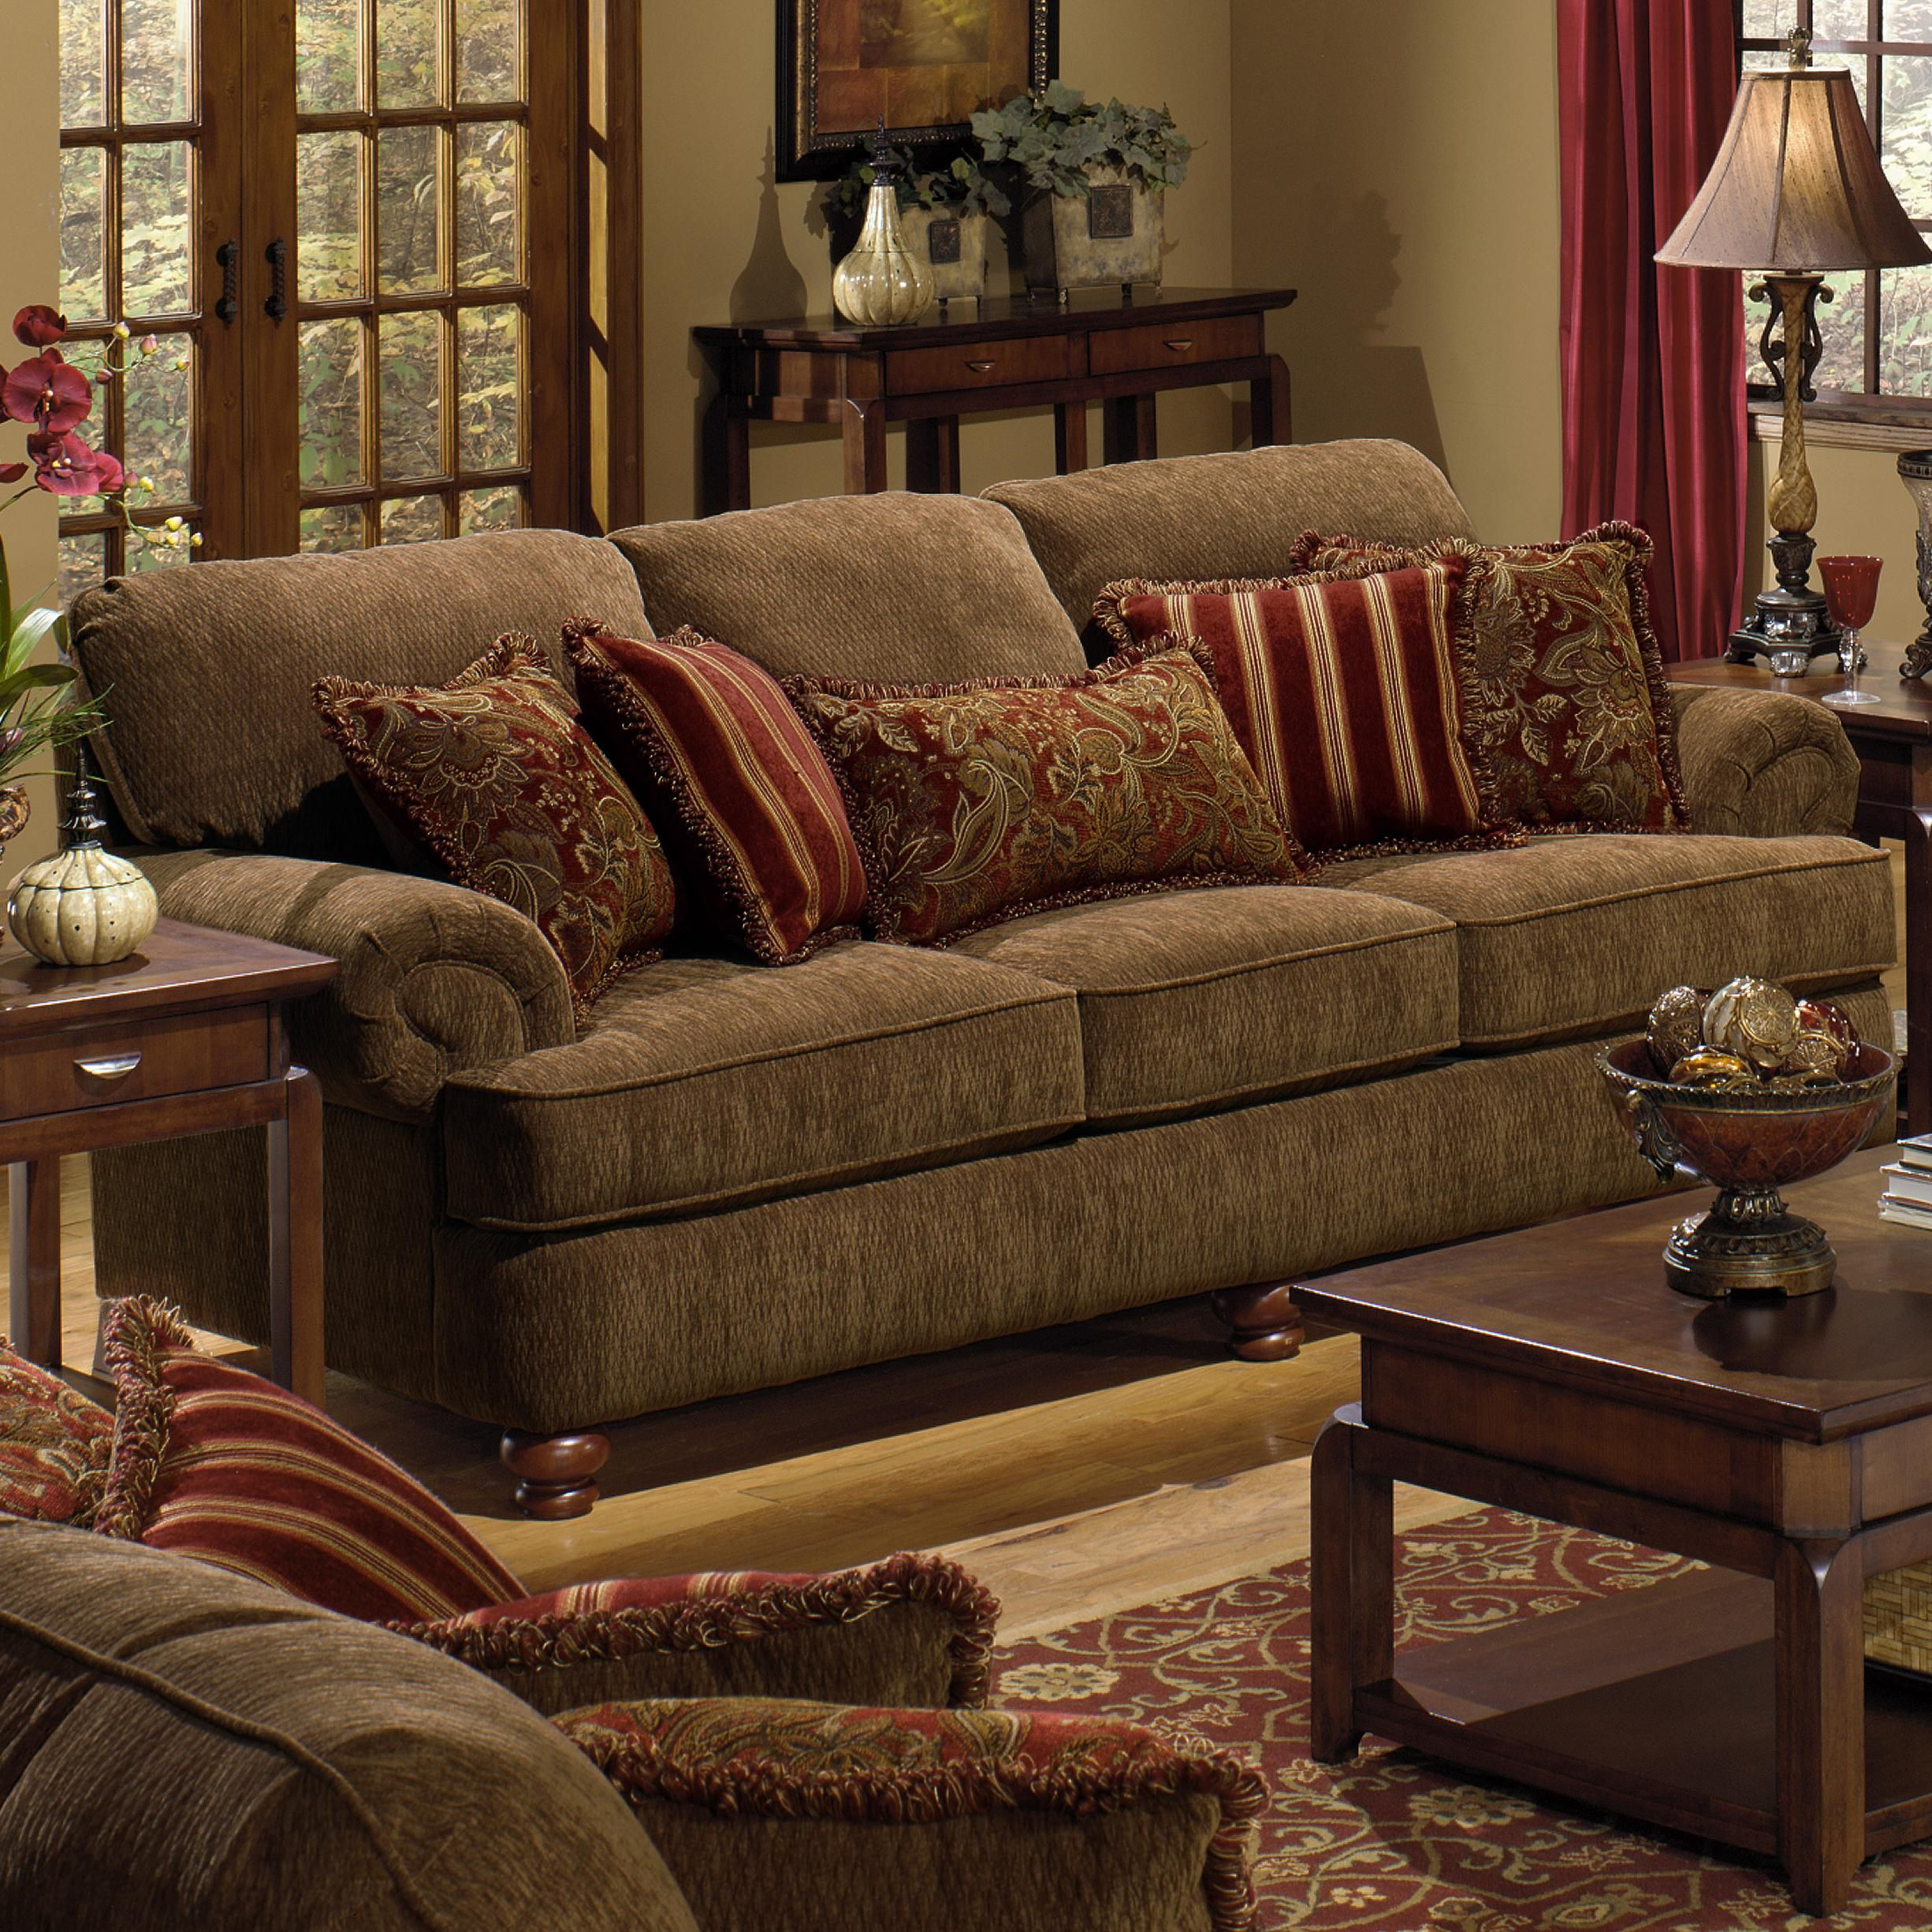 Belmont Sofa With Rolled Arms And Decorative Pillows By Jackson Furniture Part 77